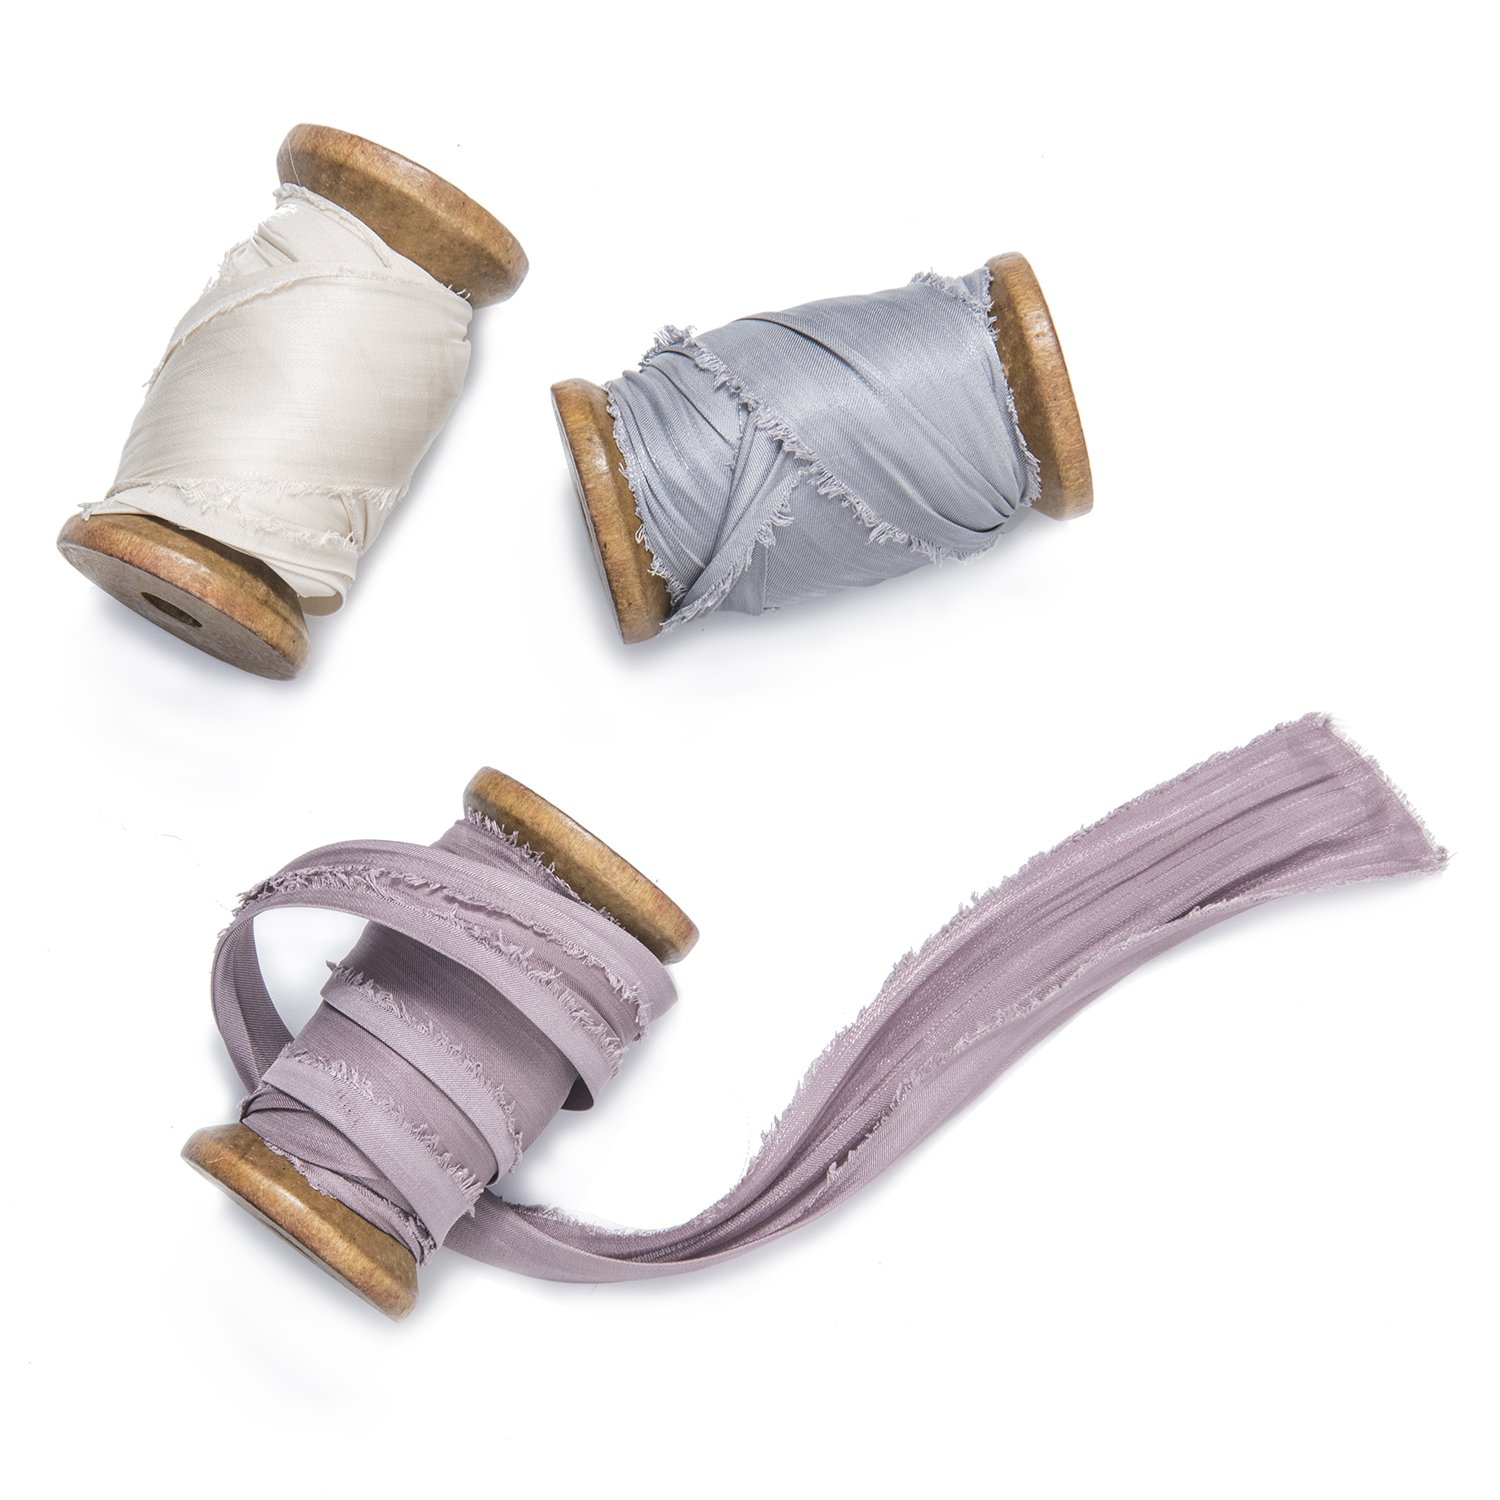 Ling's Moment Handmade Sari Silk Ribbon with Spool Set of 3 Rolls Dusty Rose/Ivory/Silver Gray Ribbons for Wedding Bouquets Invitations Gift Wrapping Decor